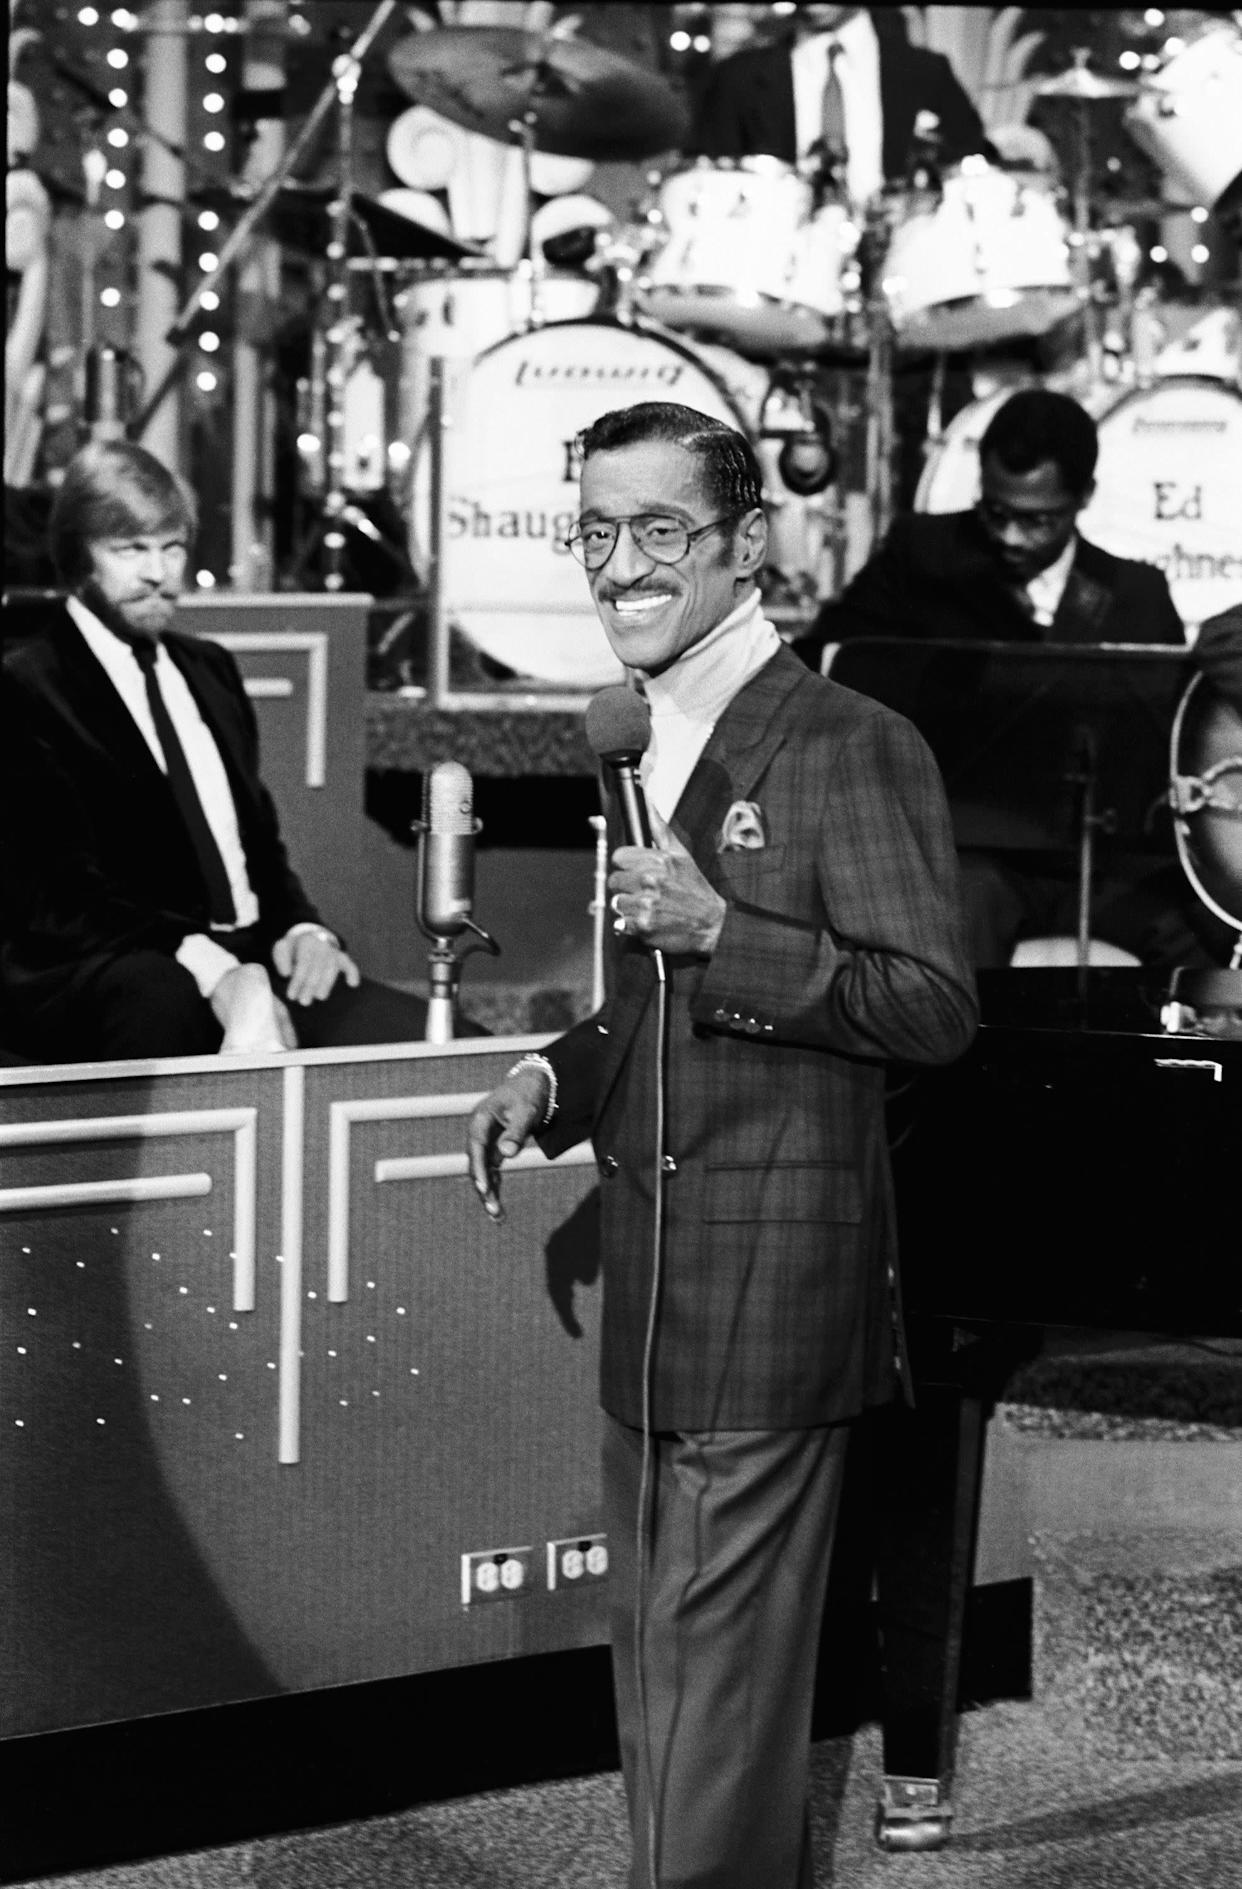 """The performer during an appearance on """"The Tonight Show Starring Johnny Carson"""" in 1985."""